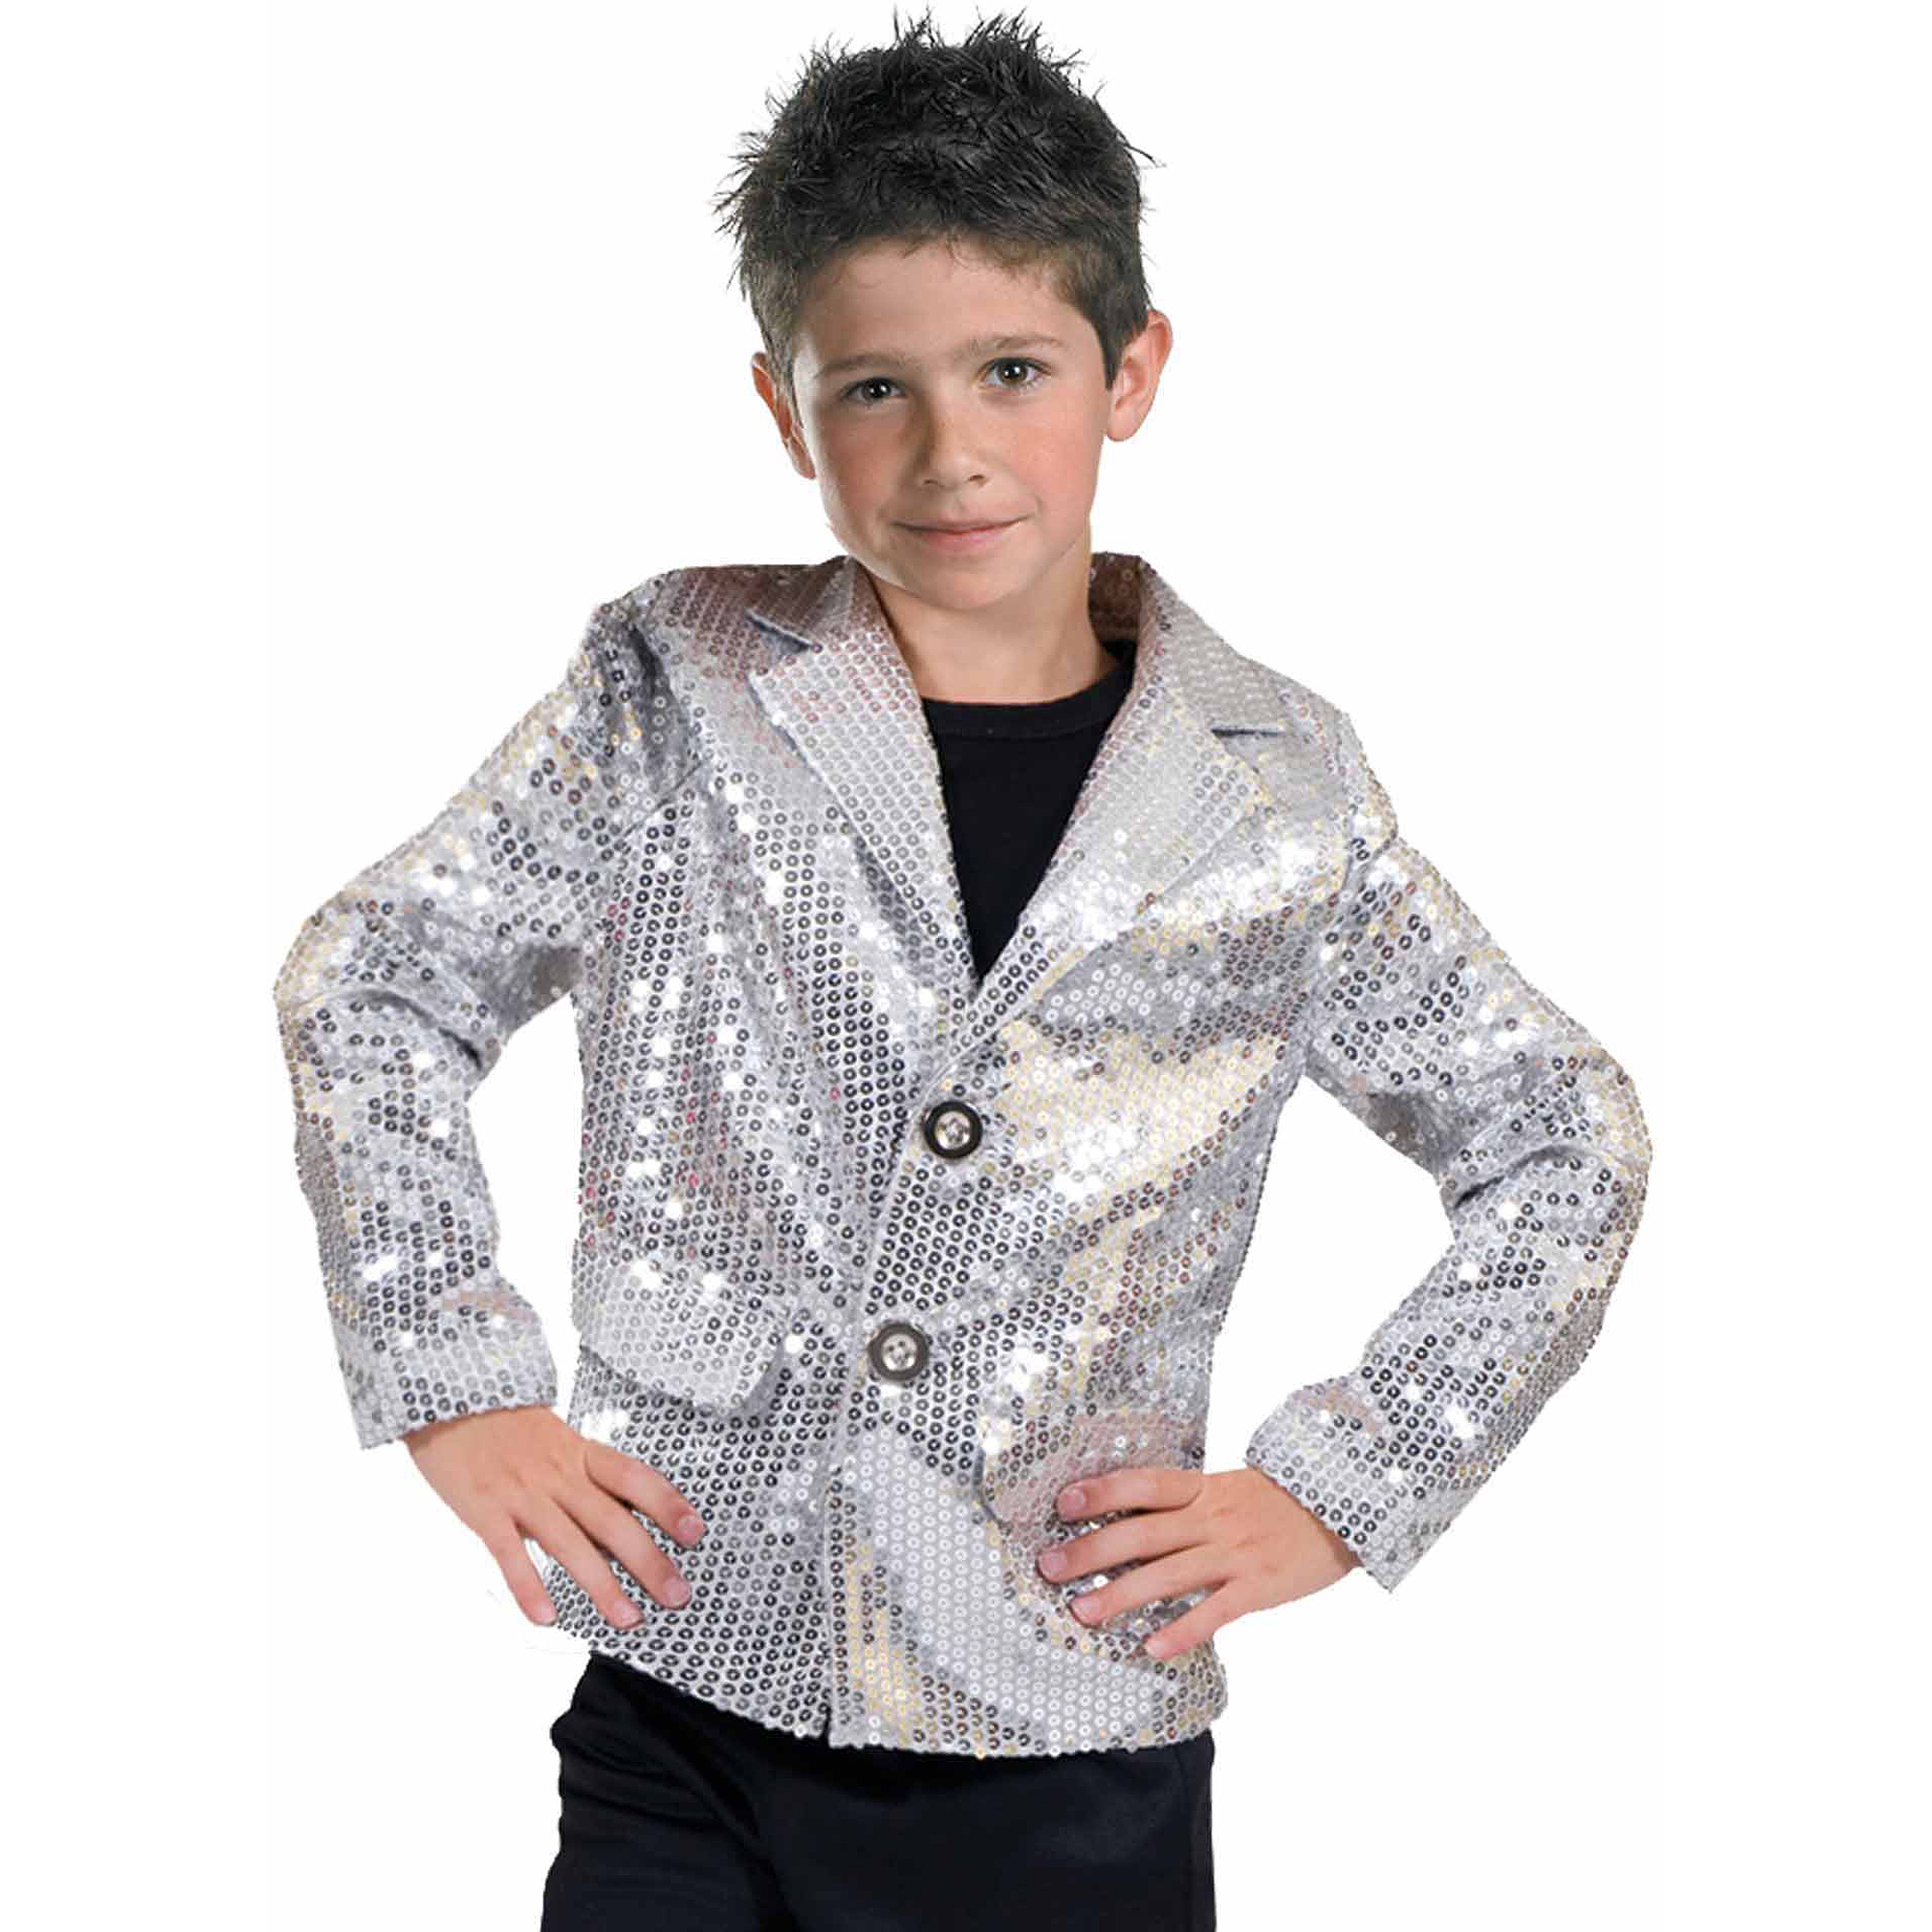 Silver Disco Jacket Child Halloween Costume